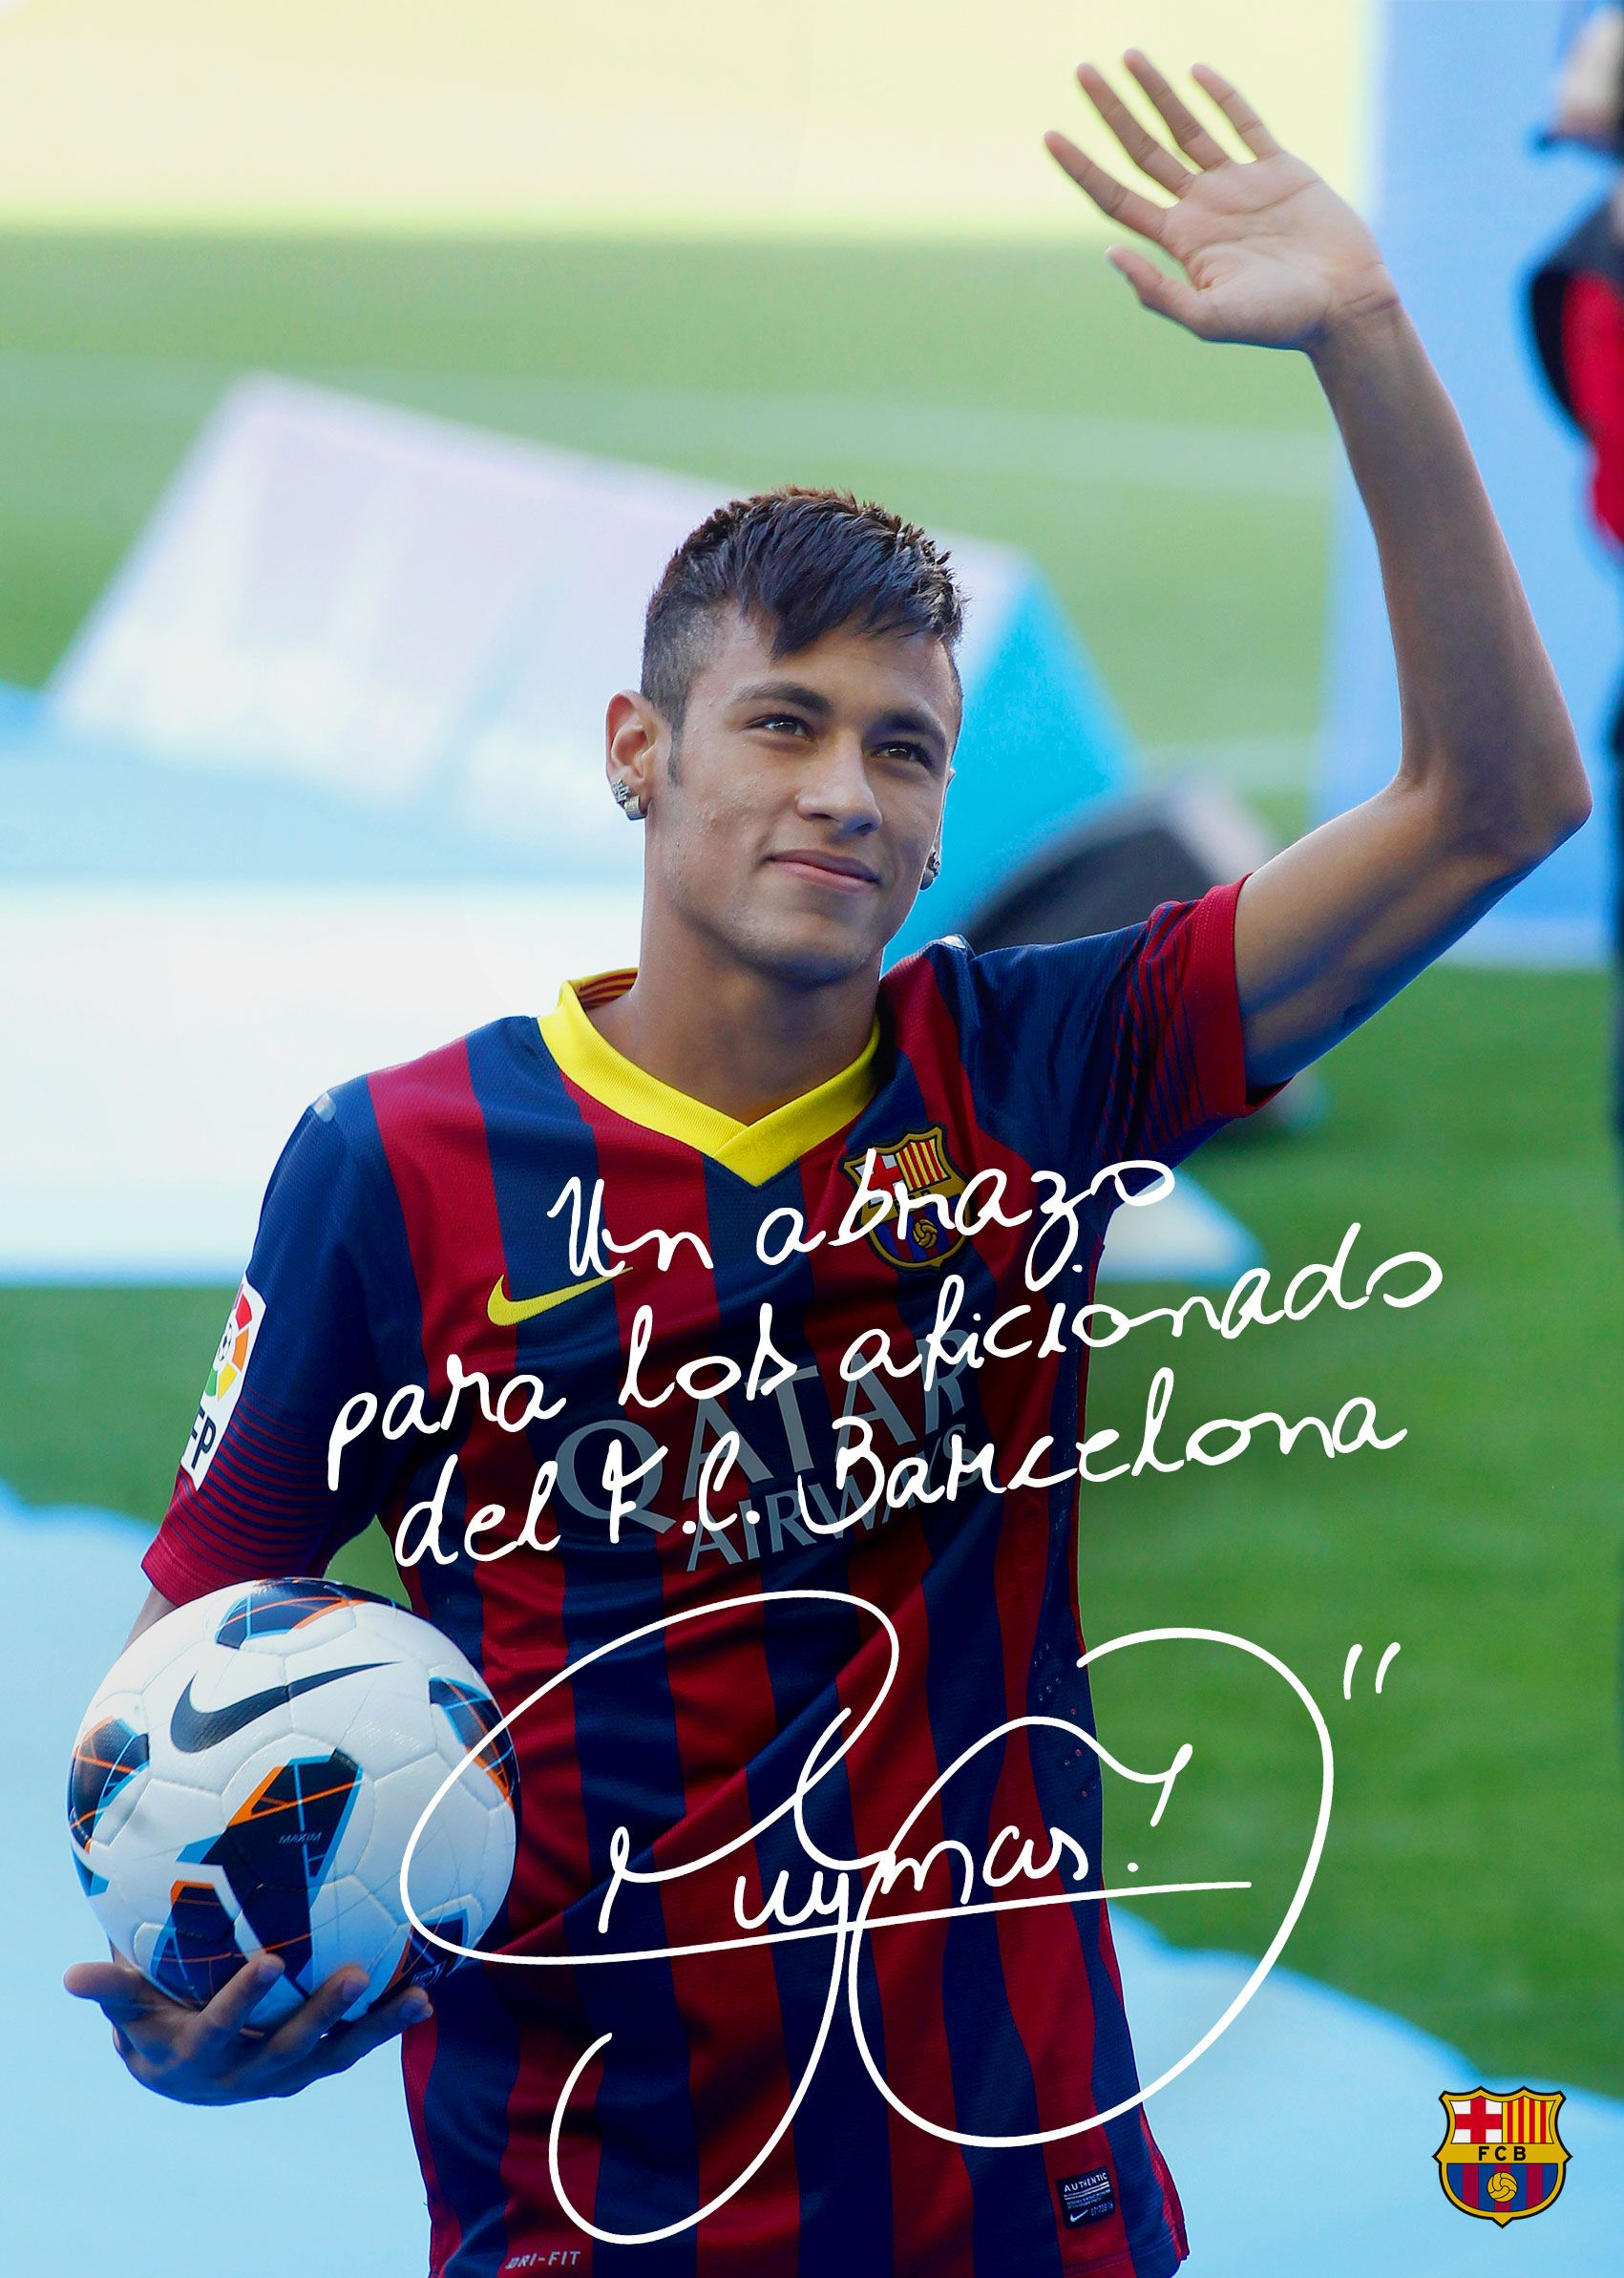 8ba08756d Get your Neymar s autograph and write whatever you want with his original  handwritting at neymarjr.mystarautograph.com